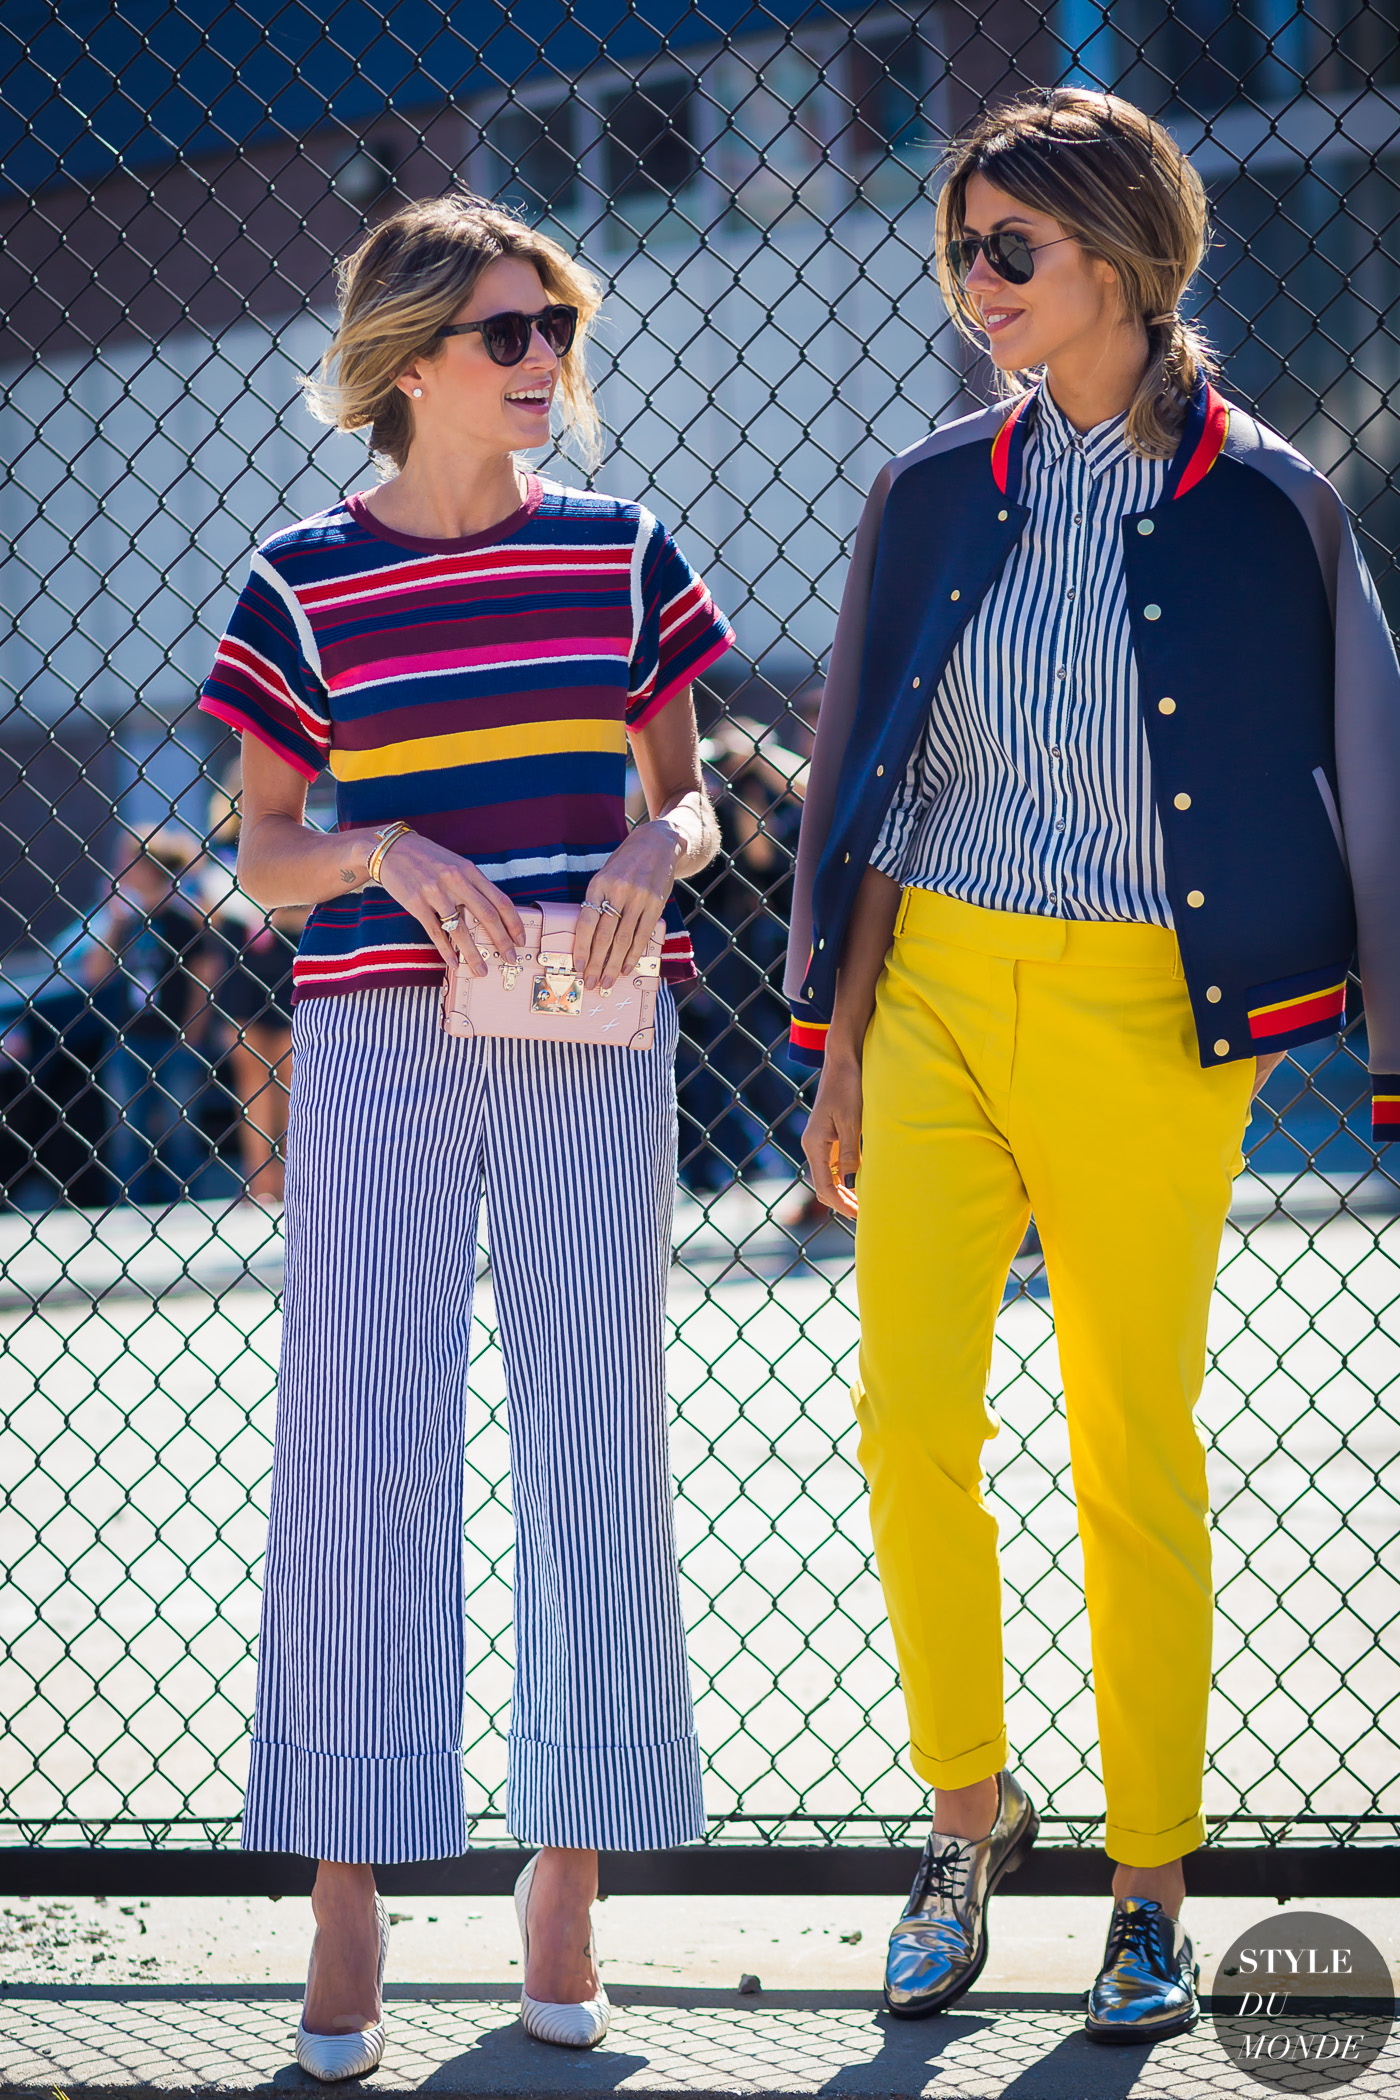 Helena Bordon and Martha Graeff Street Style Street Fashion Streetsnaps by STYLEDUMONDE Street Style Fashion Photography